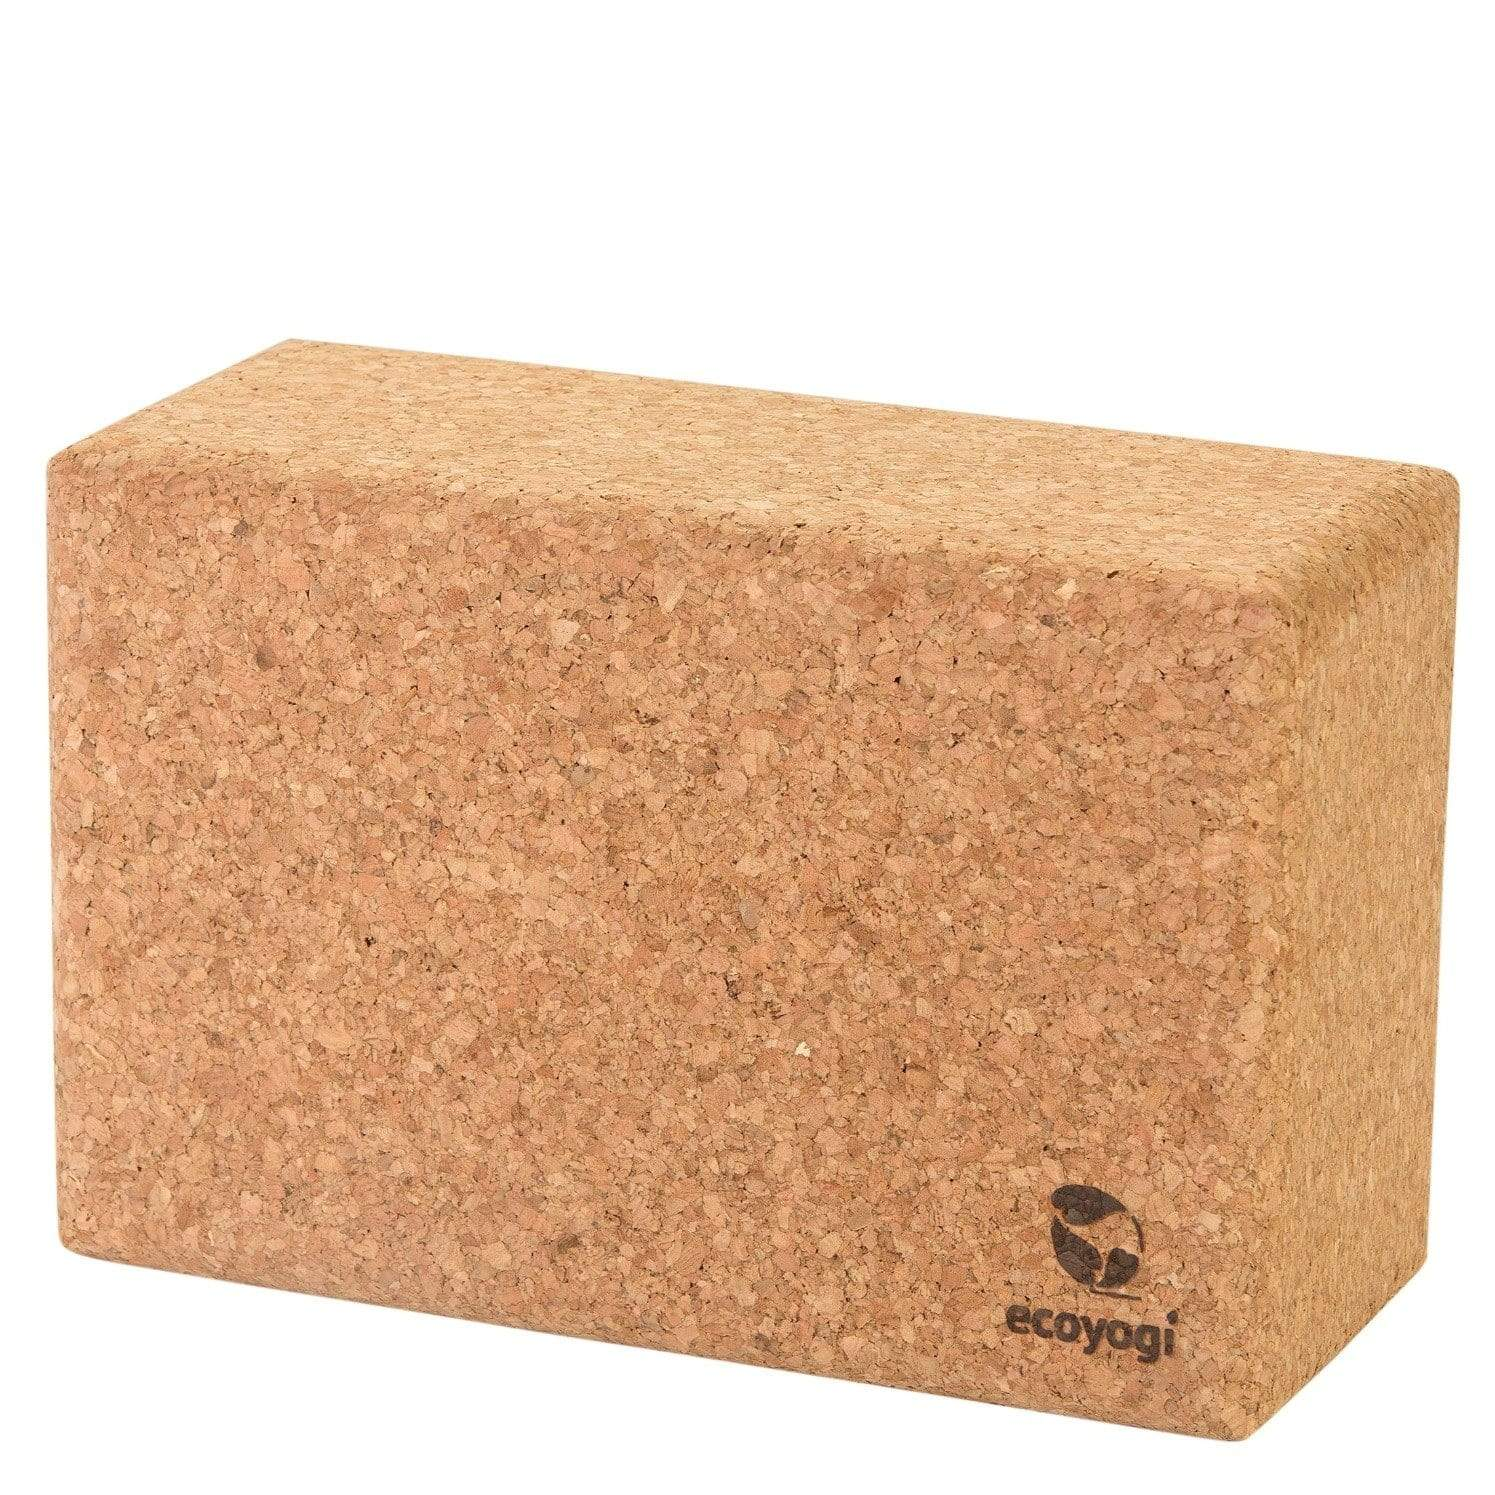 Sustainable and eco friendly cork yoga block in FSC certified natural cork